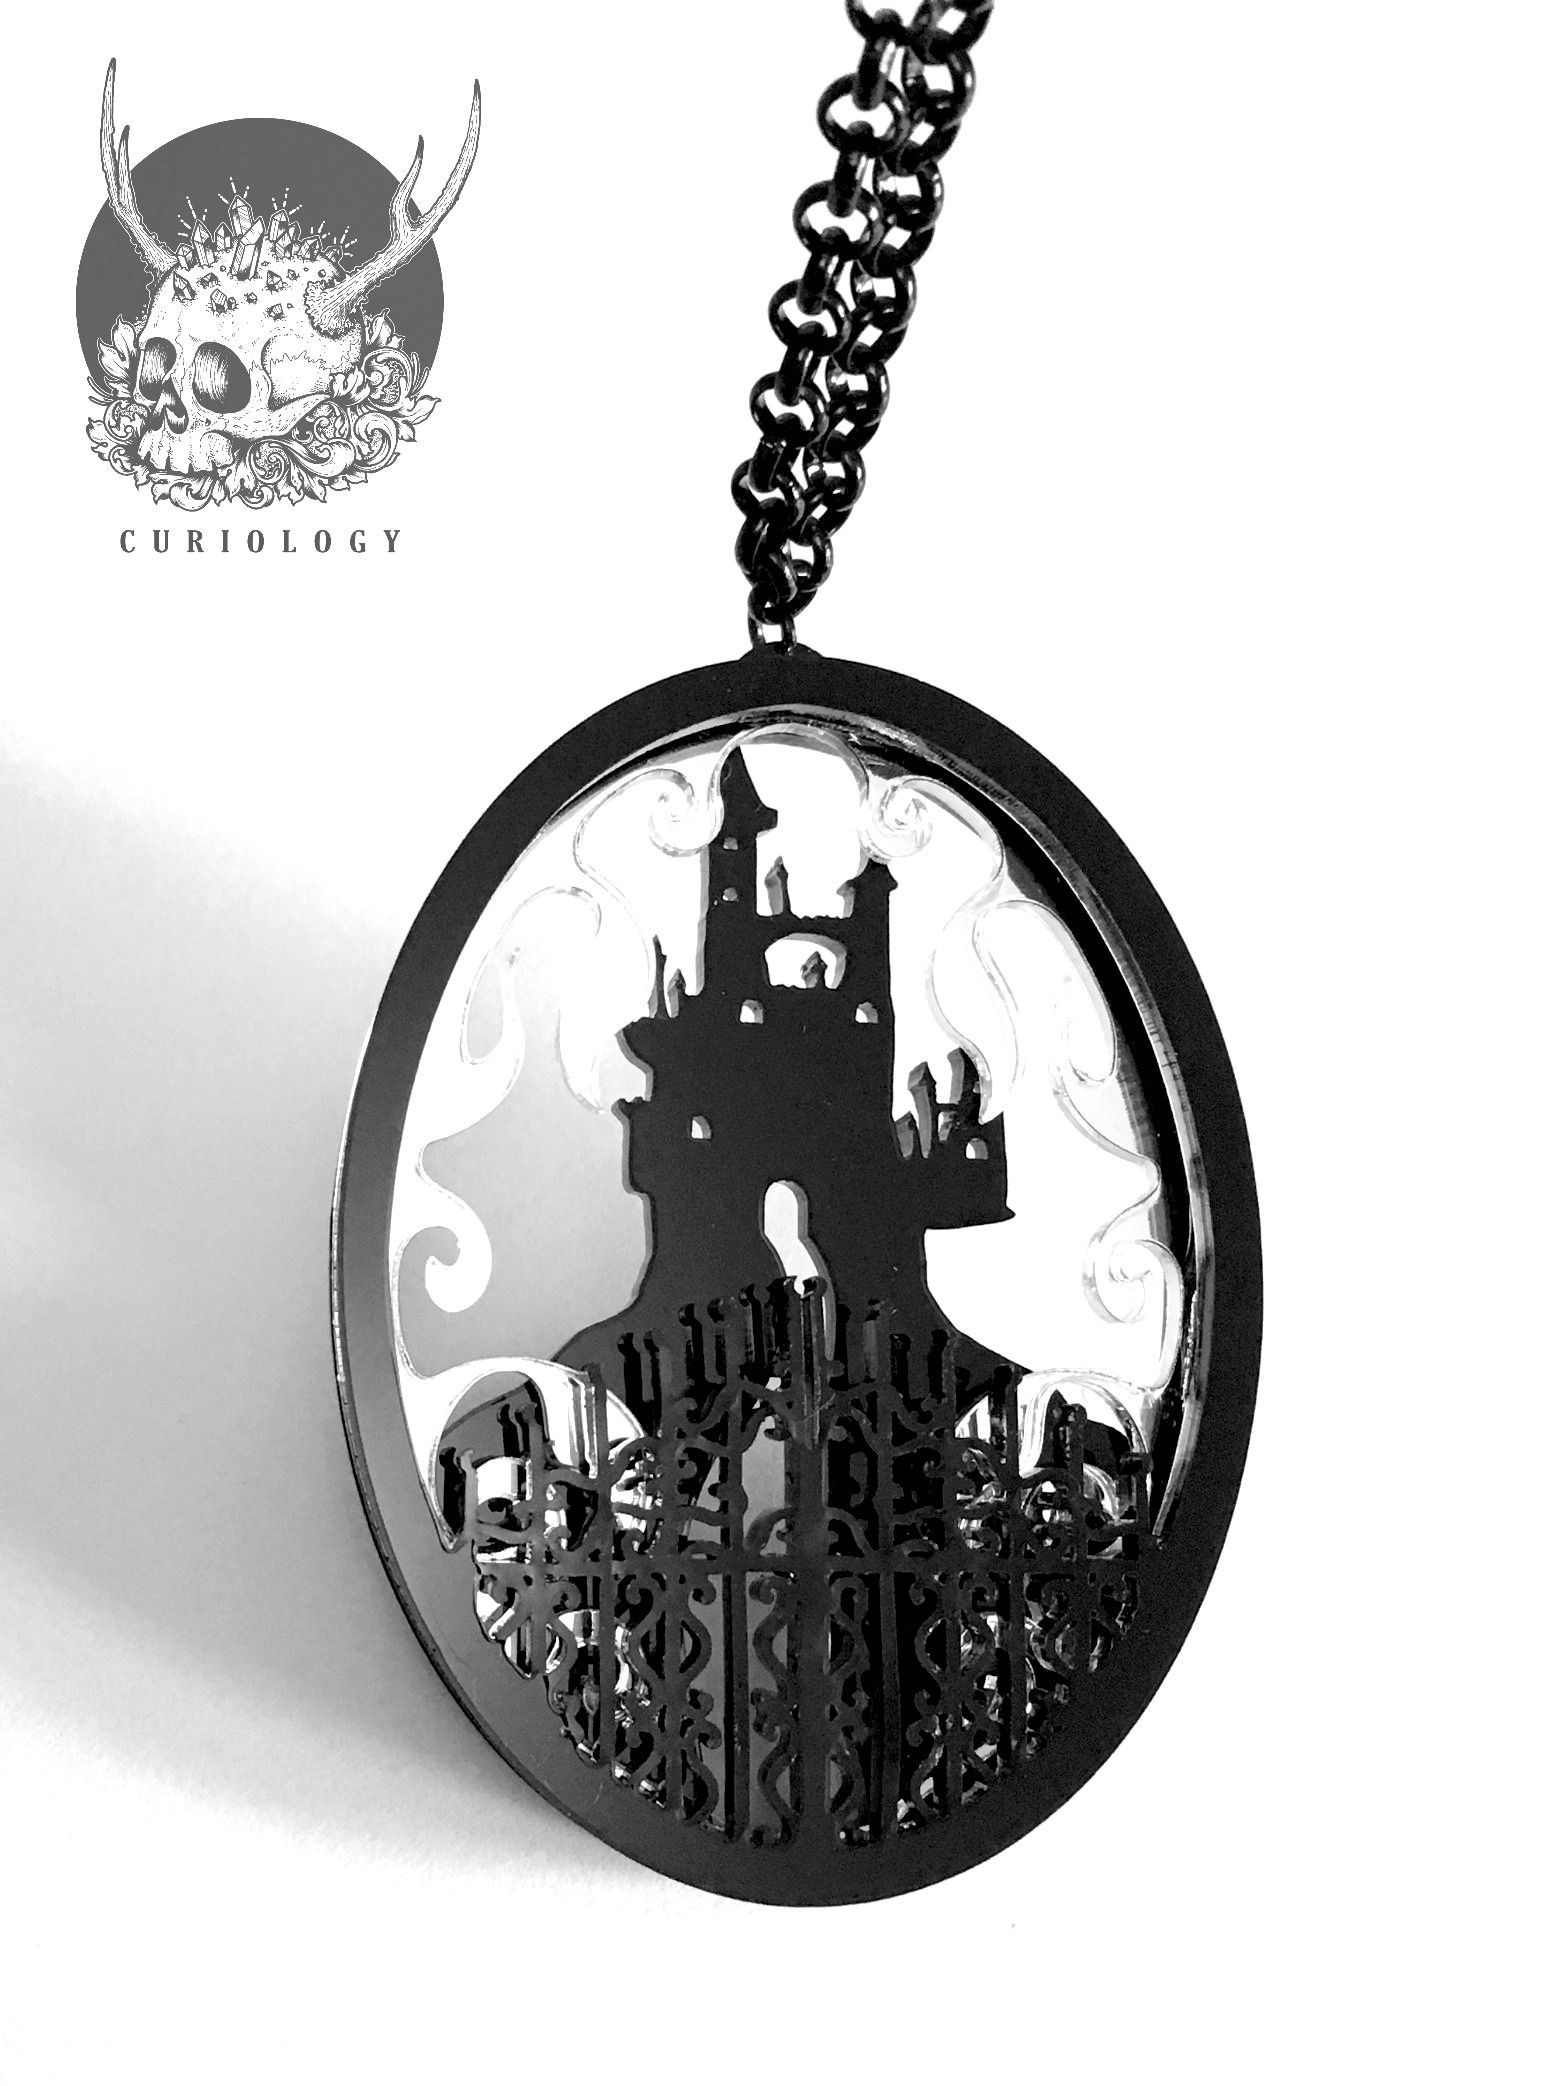 Faerie Castle 3 layered pendant. Material - Acrylic.Two layer black, middle layer mirror.Pendant size 7.5cm/3 inches.Standard options are black/silver nickel free 18 inch chains.Chains can now be upgraded to sterling silver. Please visit the Chain Upgrades section to add this to your order.Prices are as follows...16 inches   £5.0018 inches   £6.0020 inches   £6.50Black organza necklaces or faux leather cords can be added for no extra charge on request. Please leave us a note if you require…